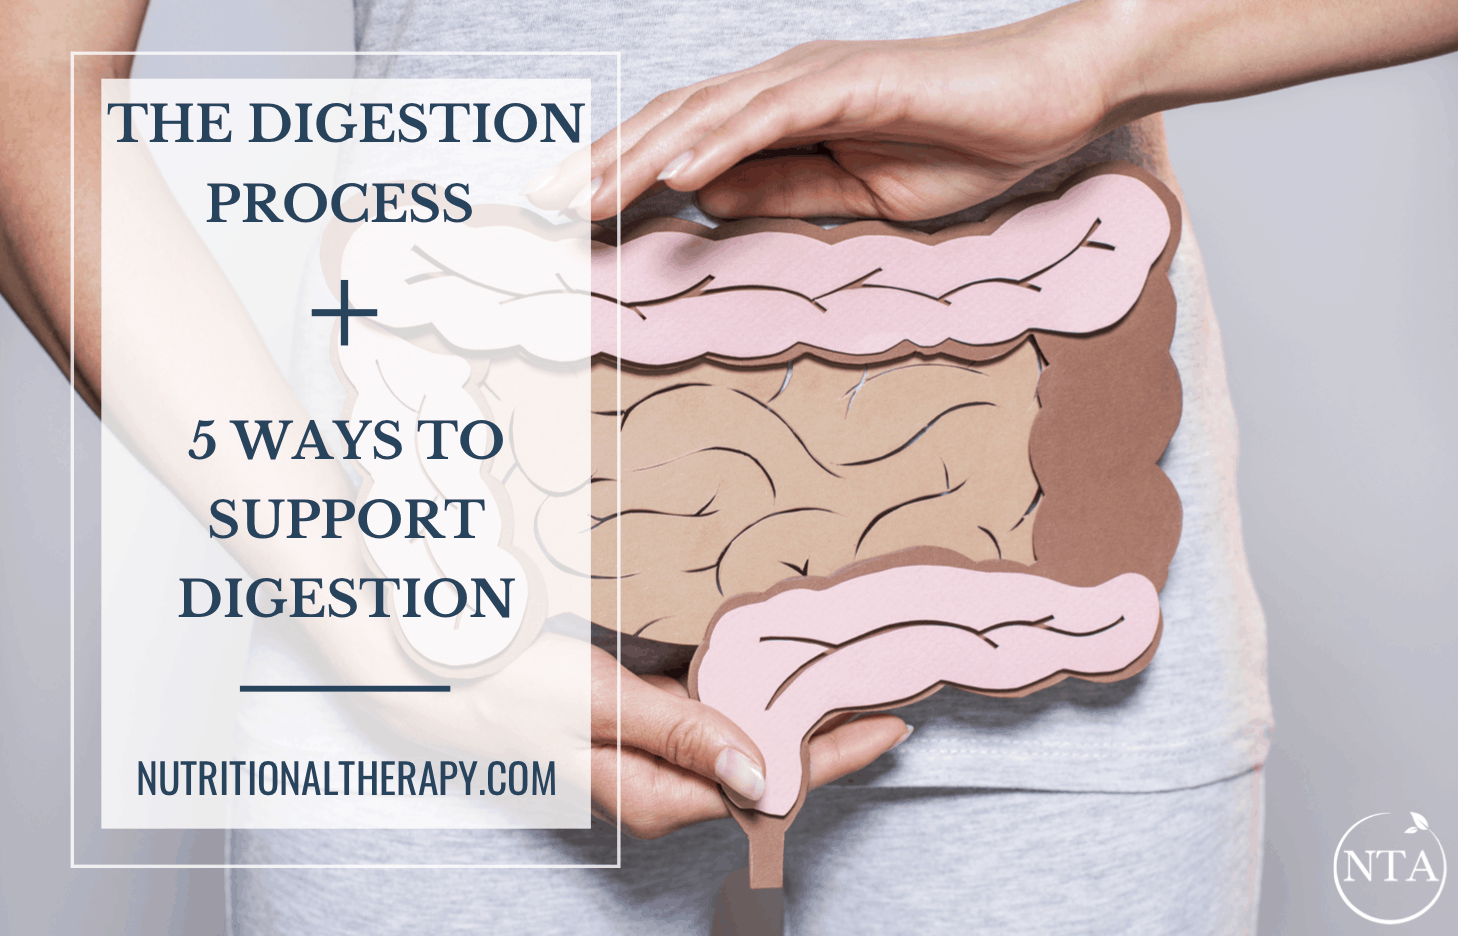 The Digestion Process And 5 Ways To Support Digestion